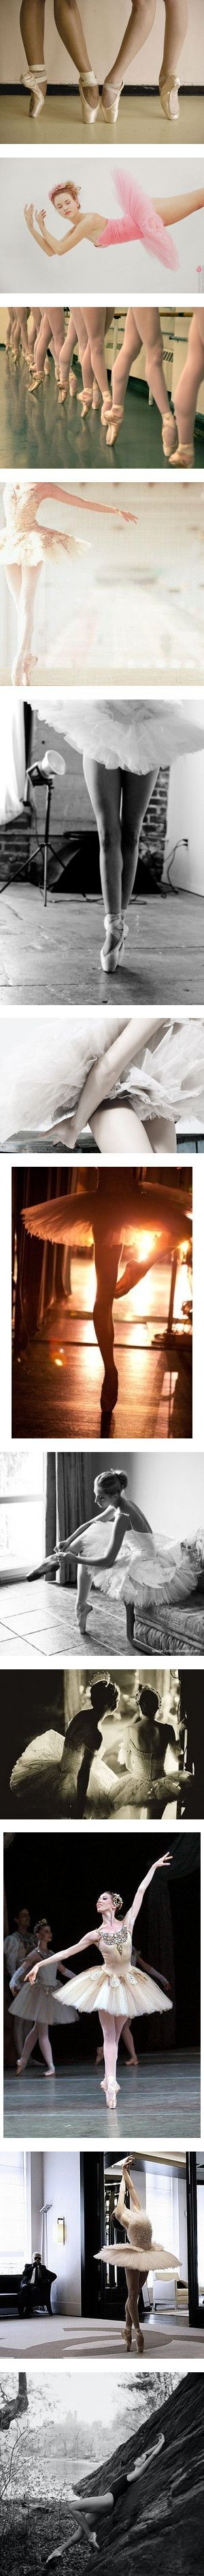 """if i were a ballet dancer"" by daydreamer20-1 ❤ liked on Polyvore"